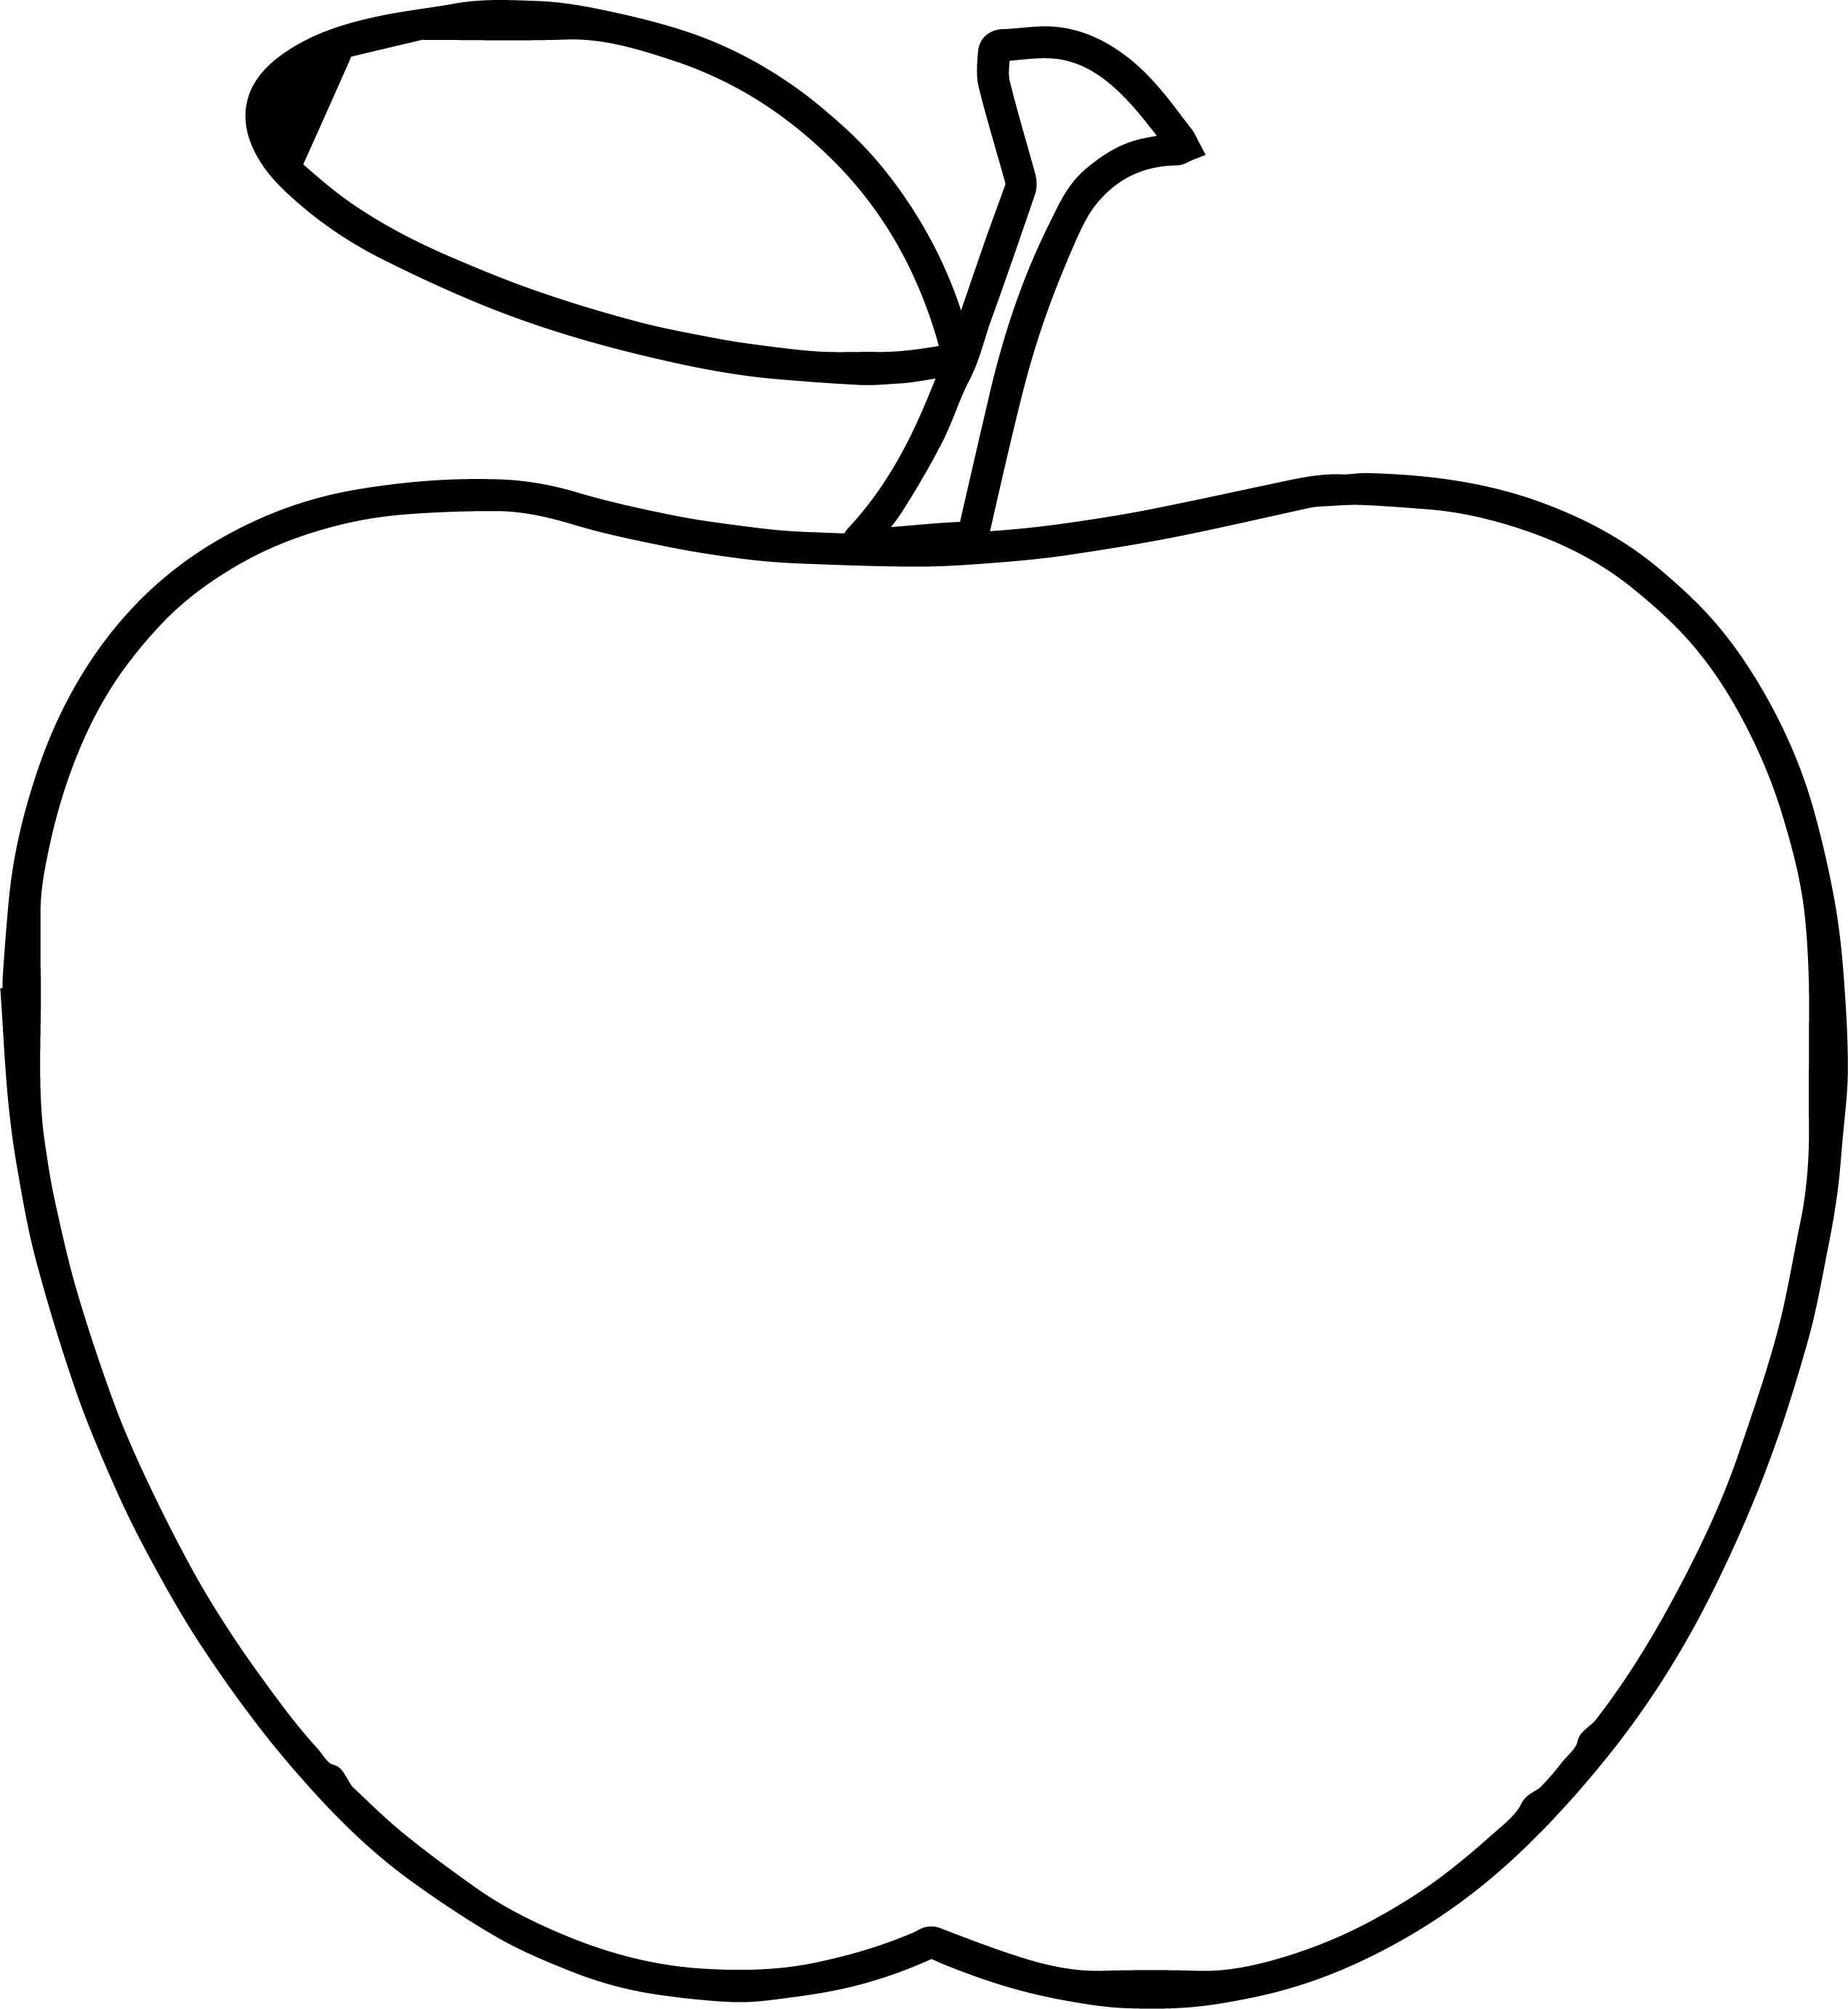 a is for apple coloring page teacher apple apple simple coloring page easy coloring apple coloring a for is page